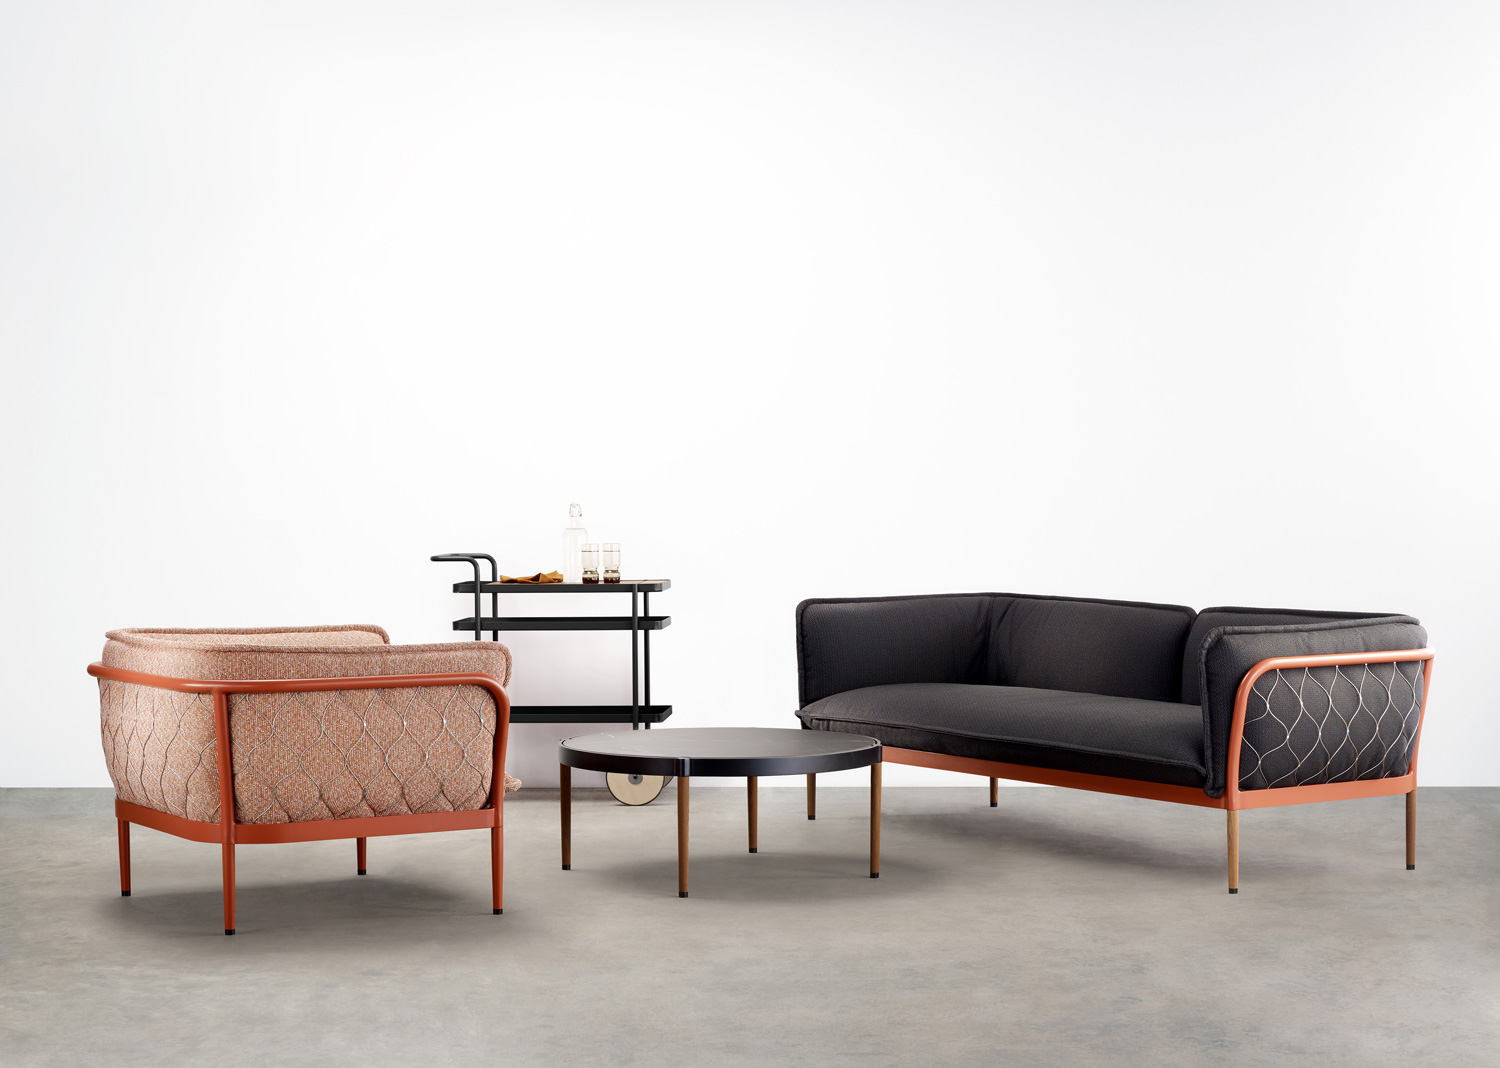 The 'Trace' outdoor collection by Adam Goodrum for Tait.